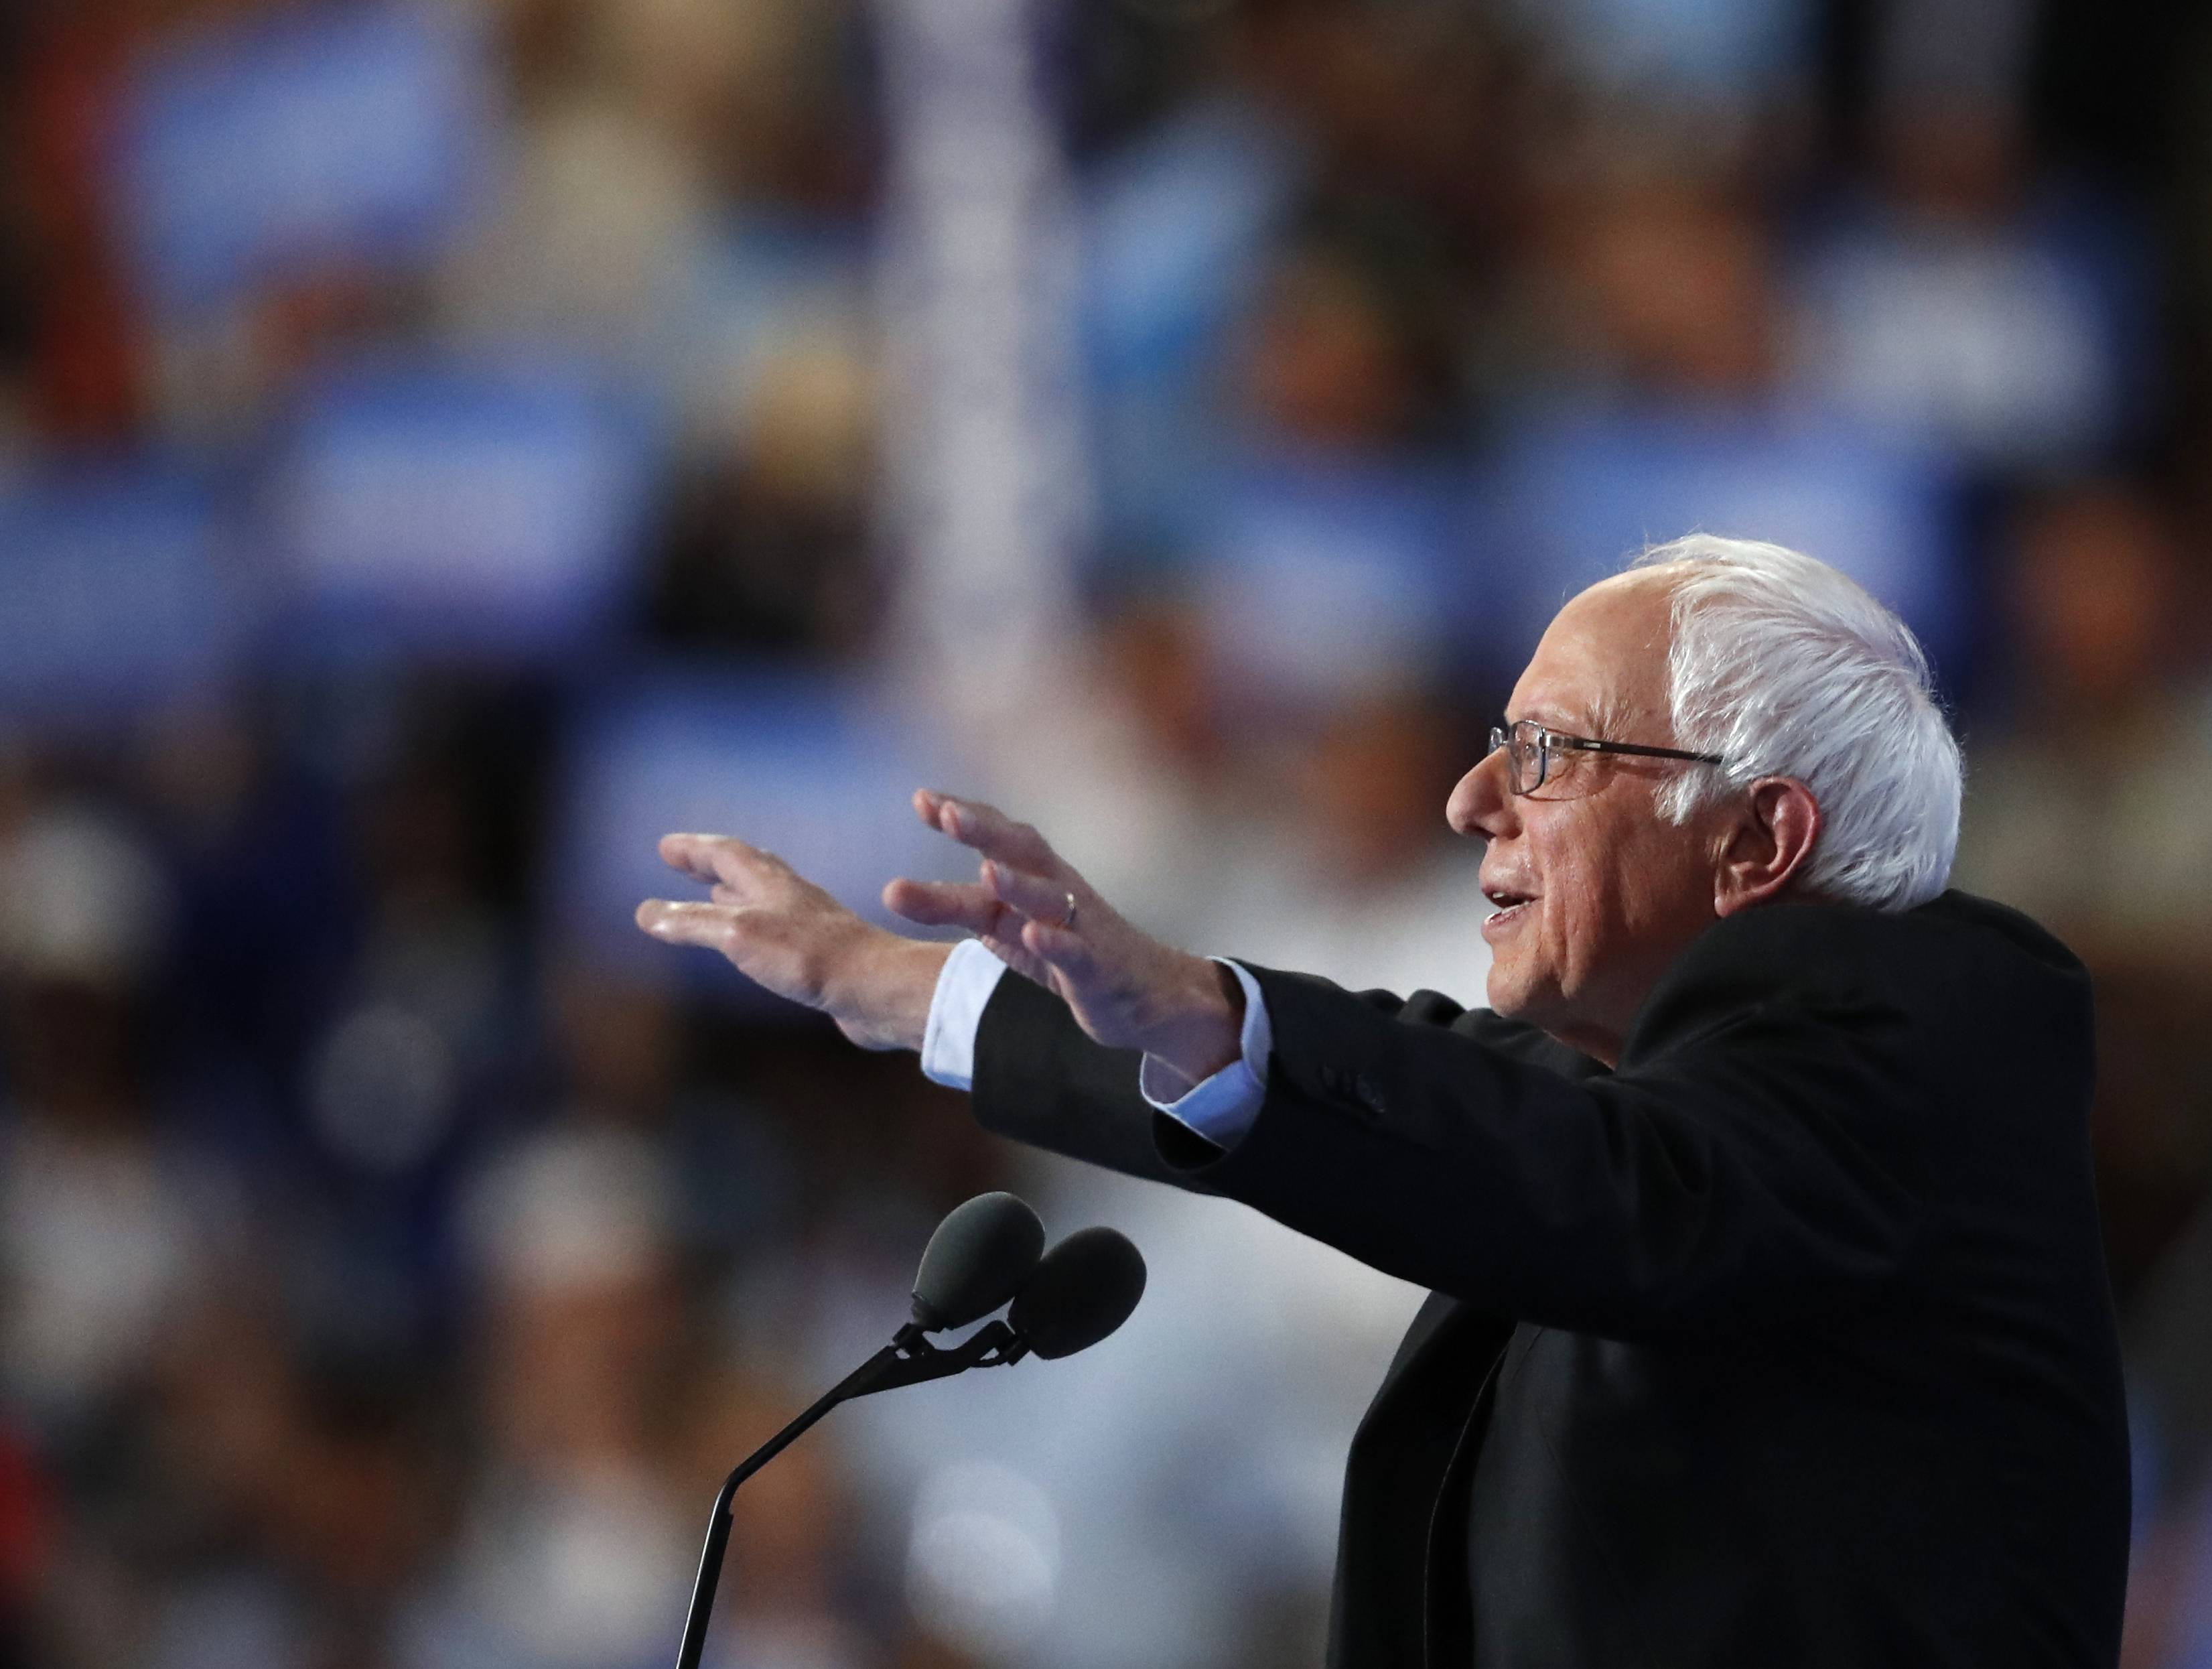 Former Democratic Presidential candidate, Sen. Bernie Sanders, I-Vt., gestures as he speaks during the first day of the Democratic National Convention in Philadelphia , Monday, July 25, 2016.